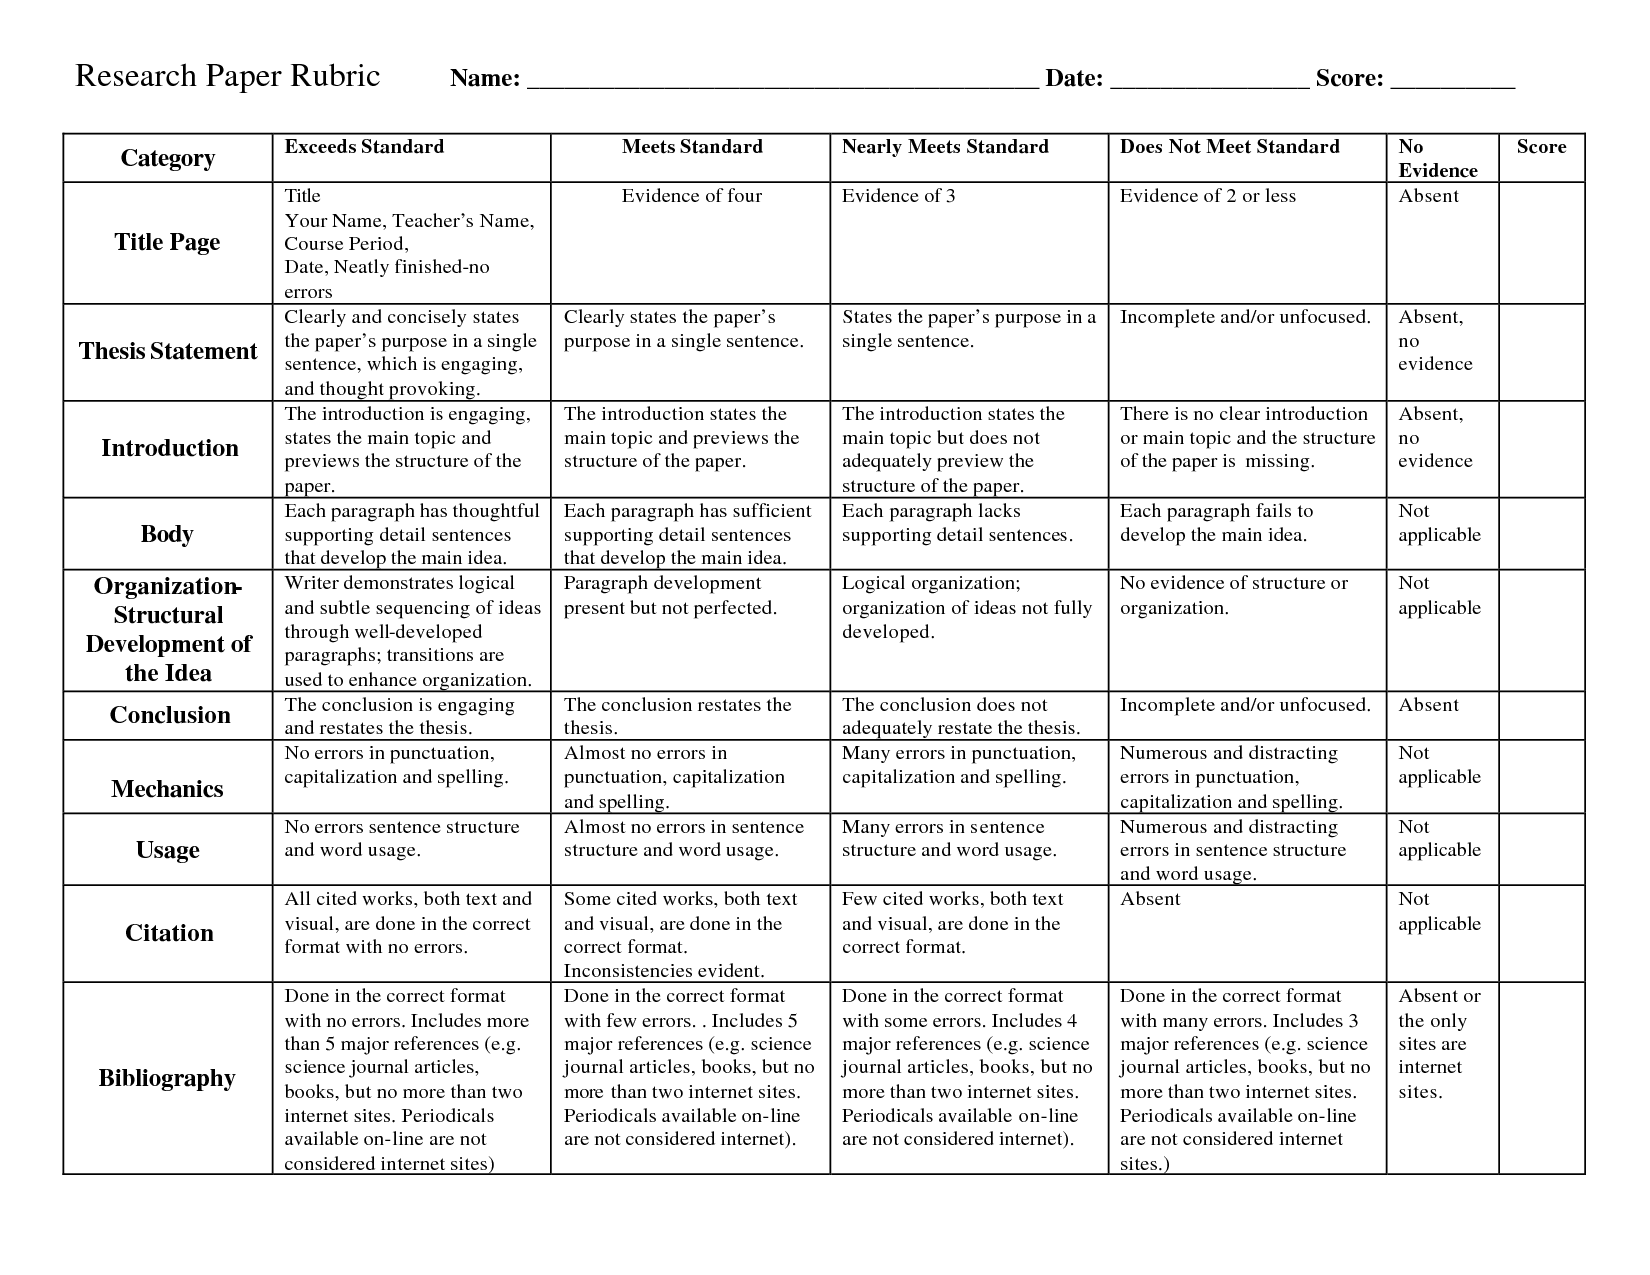 History day essay rubric for high school